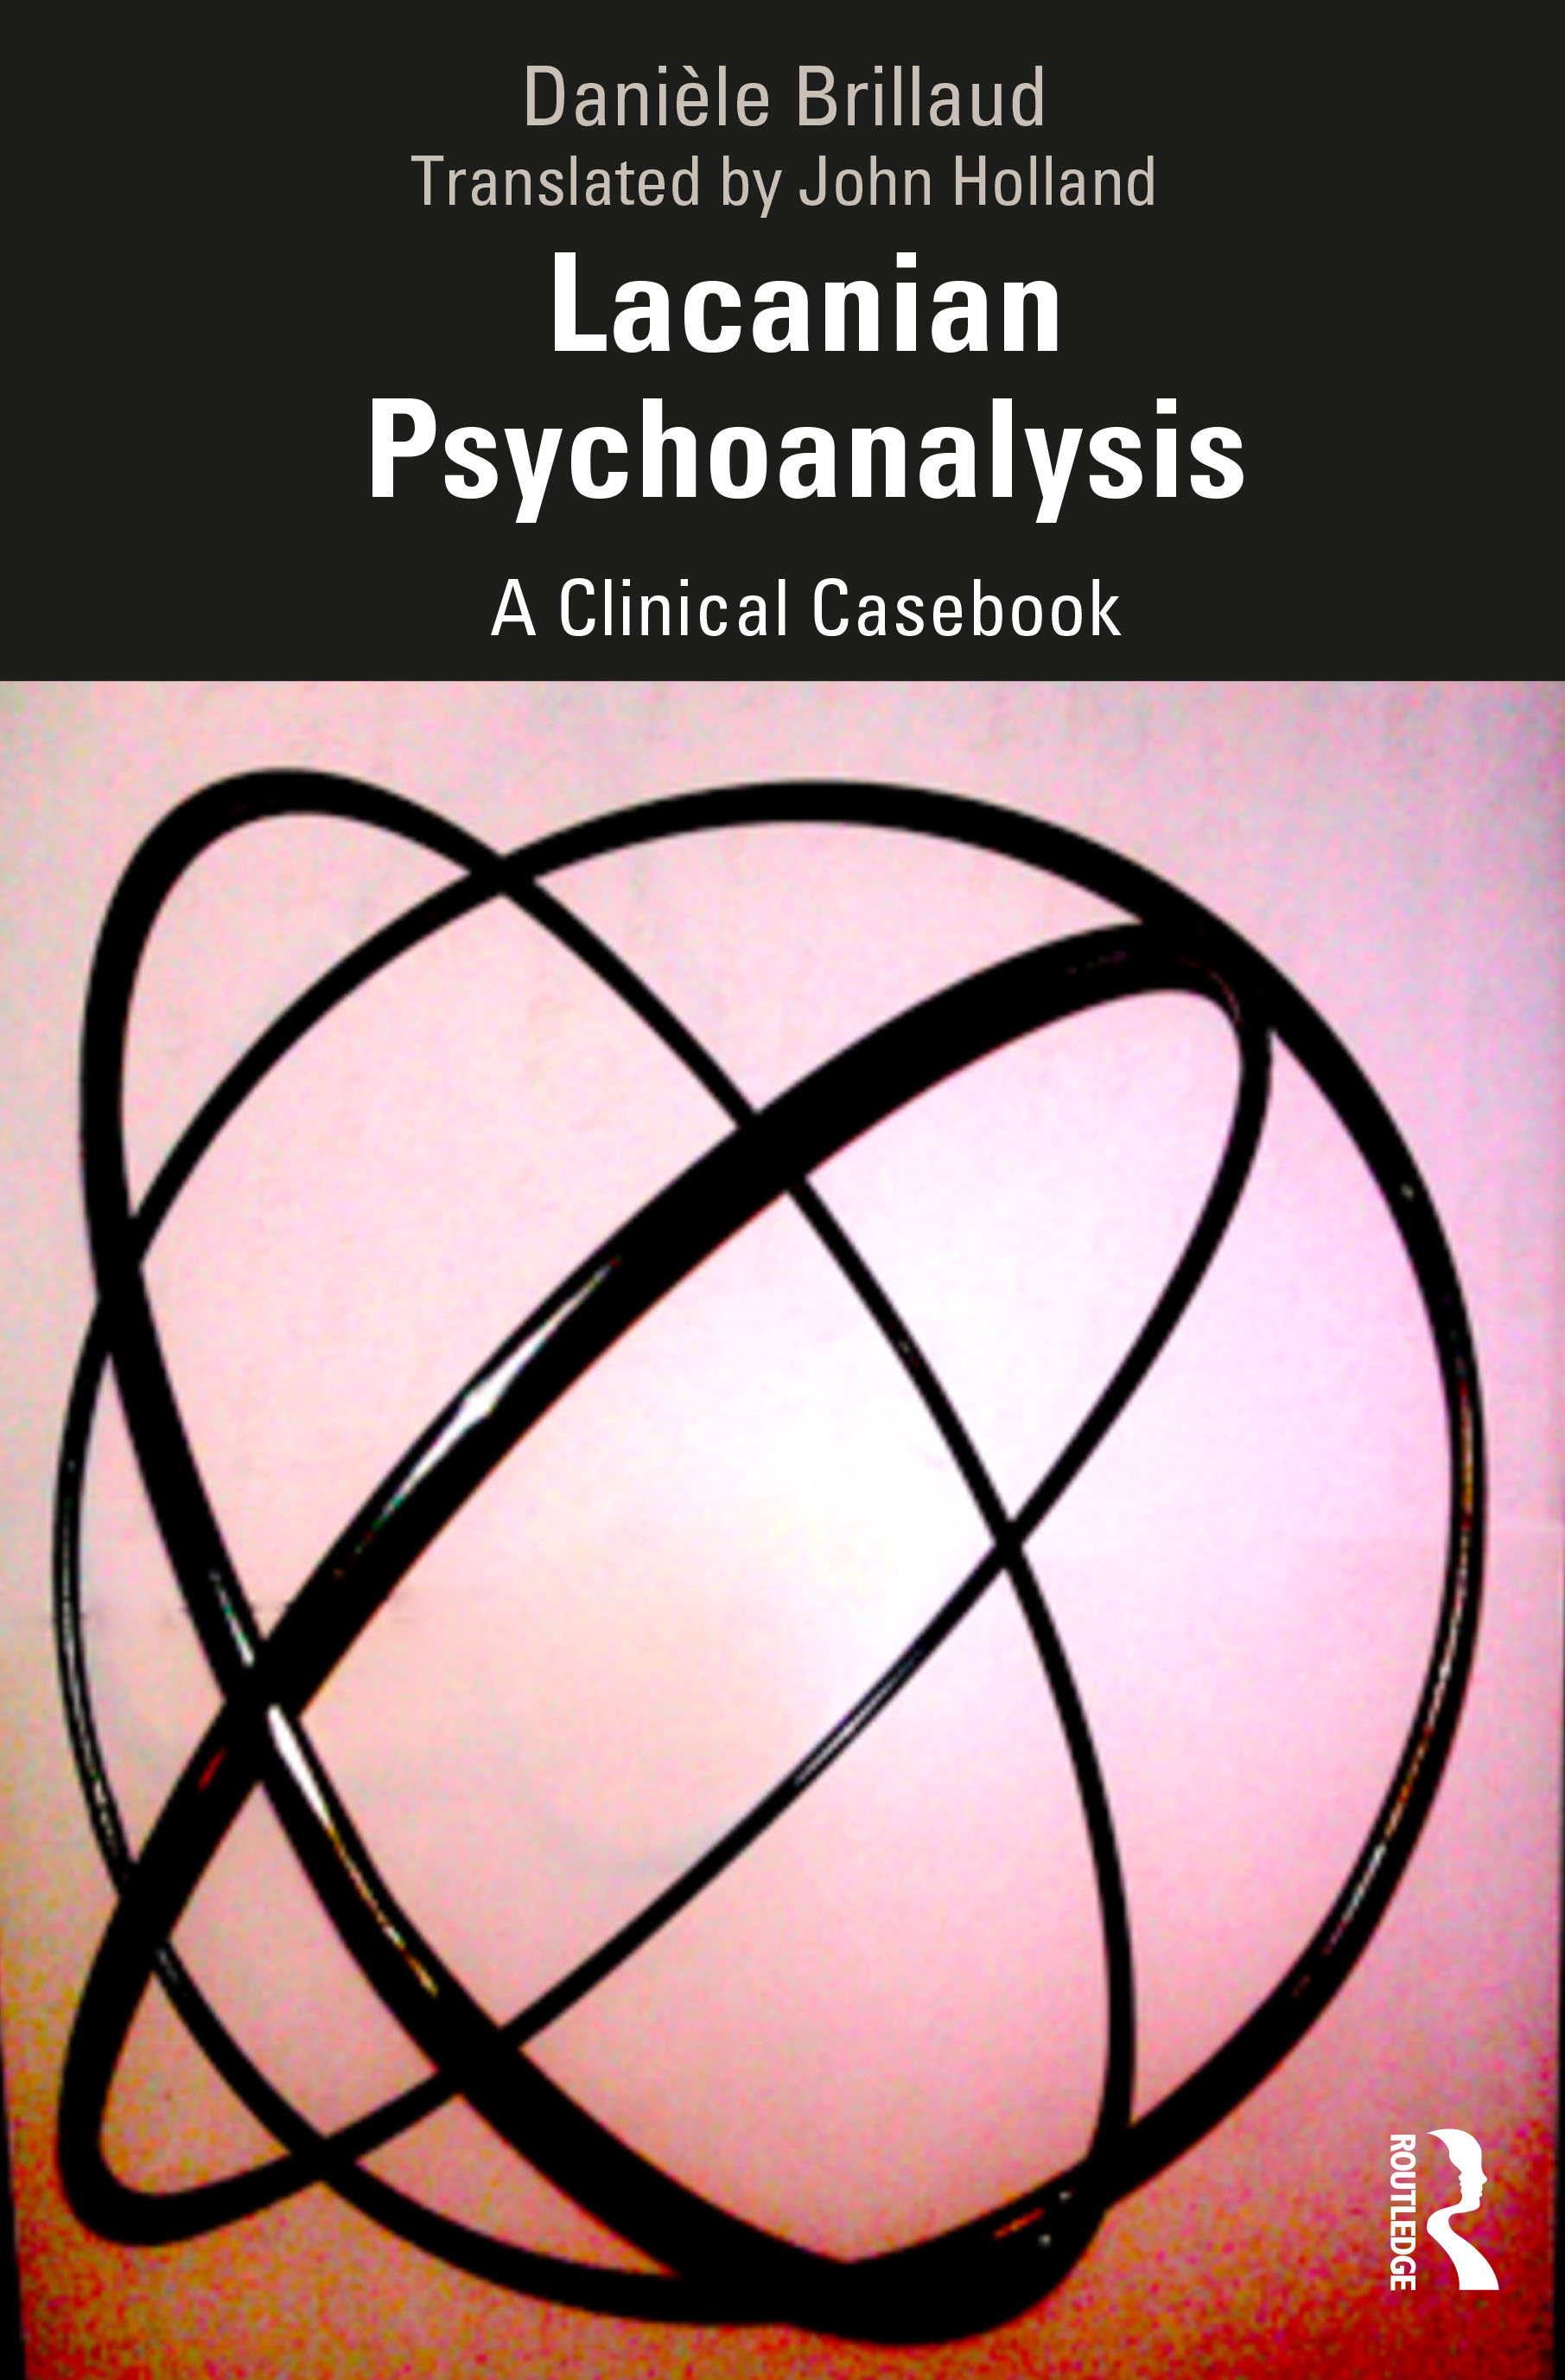 Lacanian Psychoanalysis: A Clinical Casebook book cover